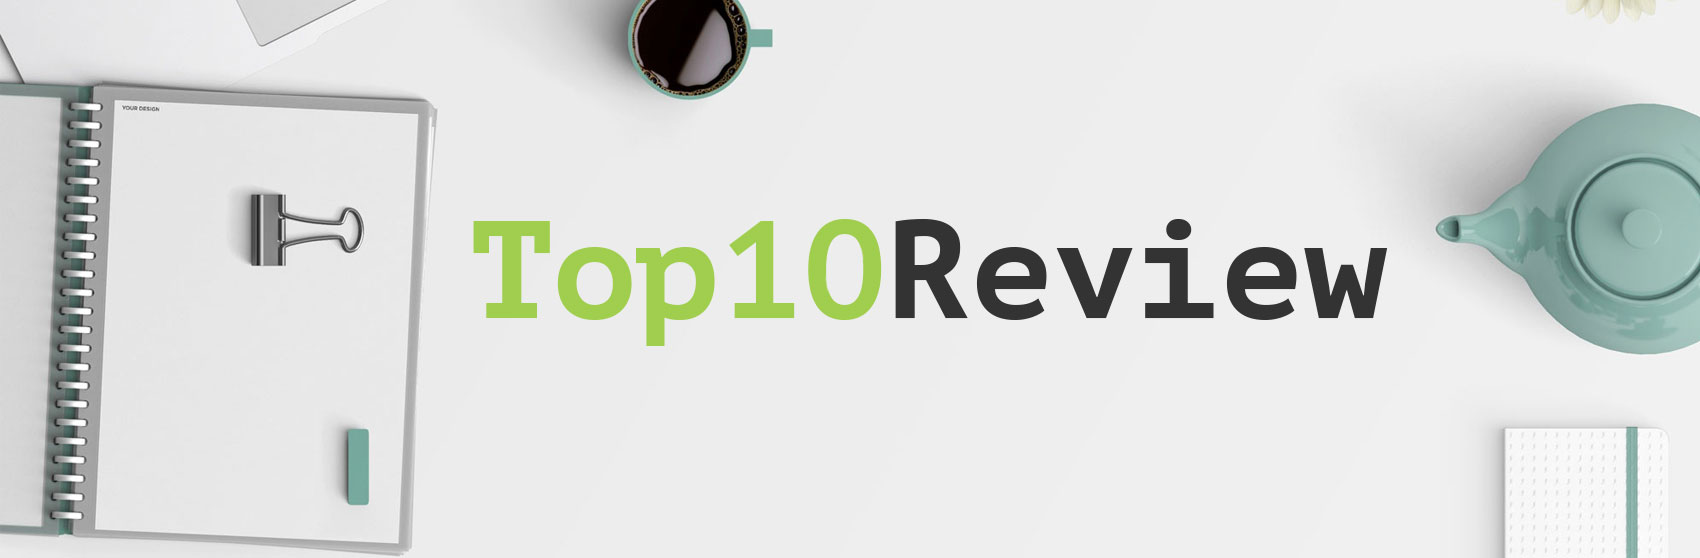 Top10Review